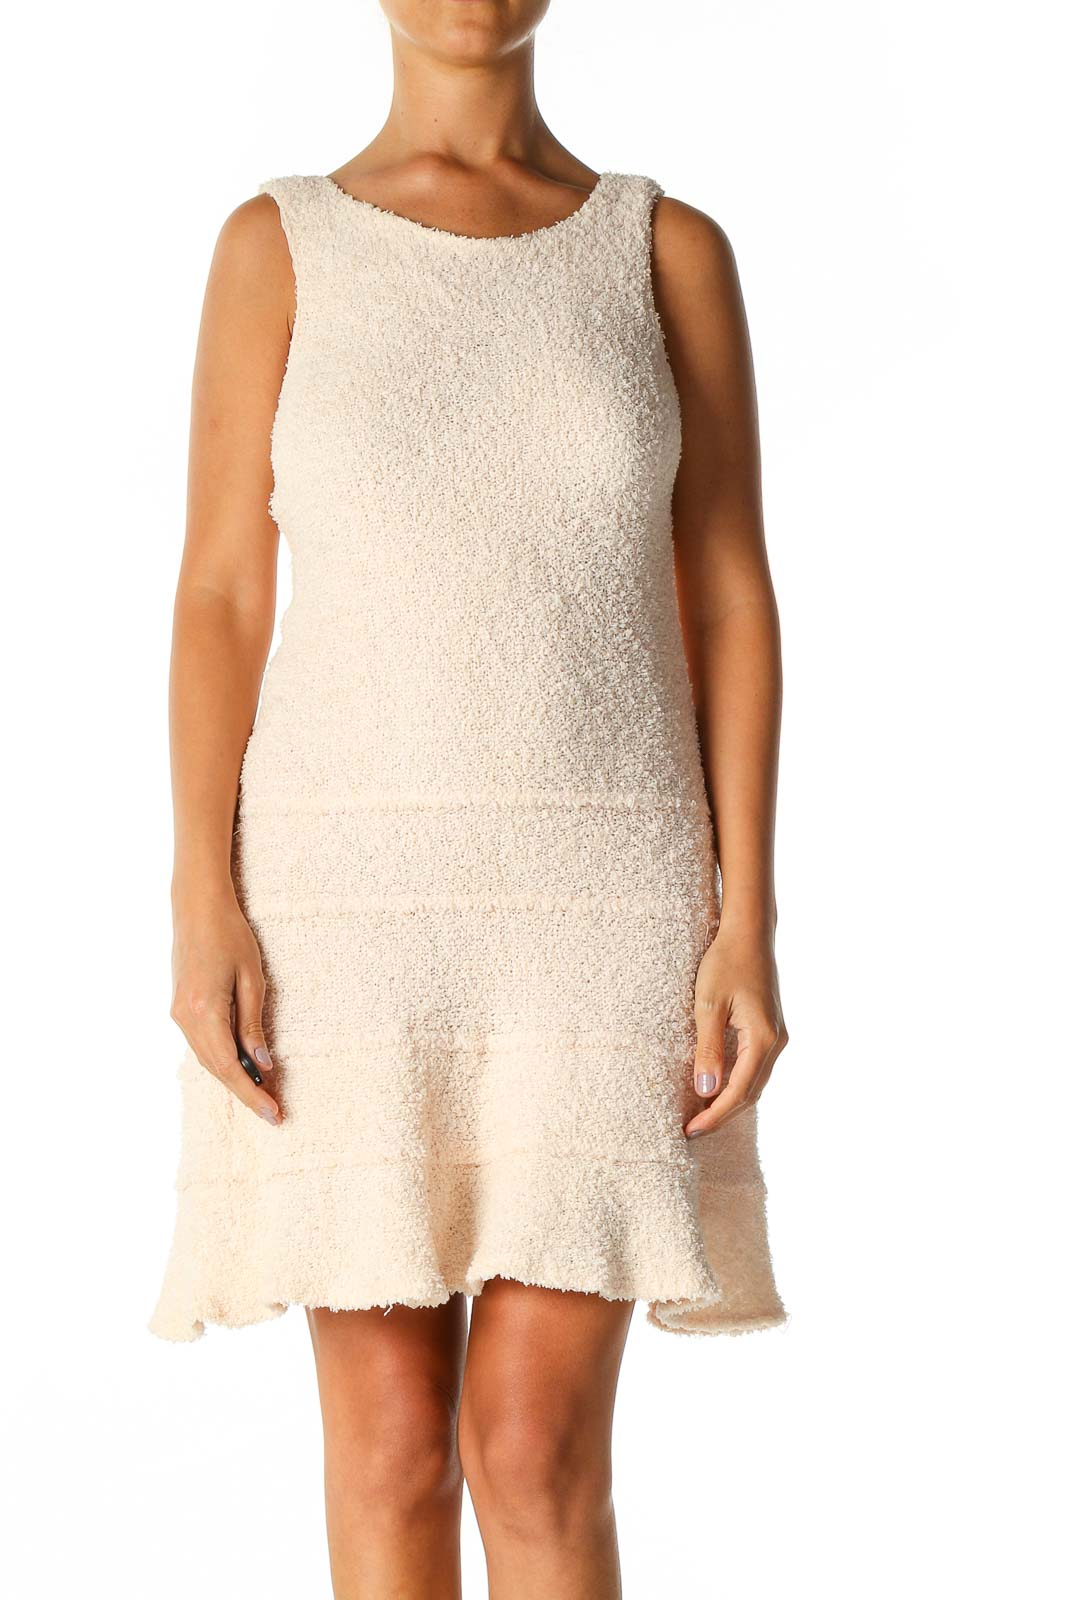 Pink Textured Casual A-Line Dress Front